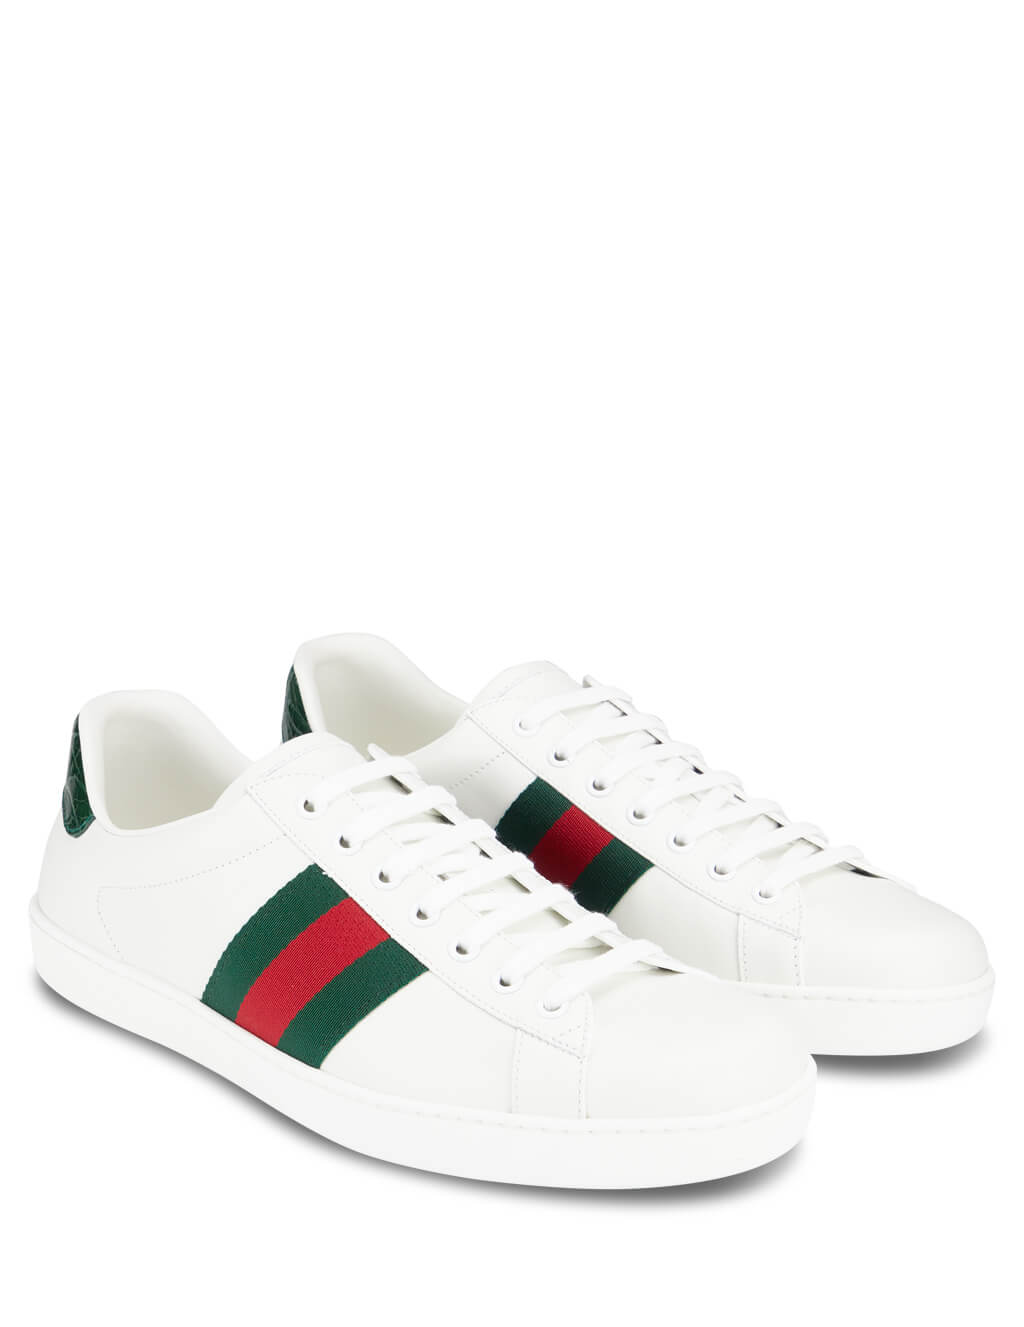 Gucci Men's White Ace Leather Sneakers